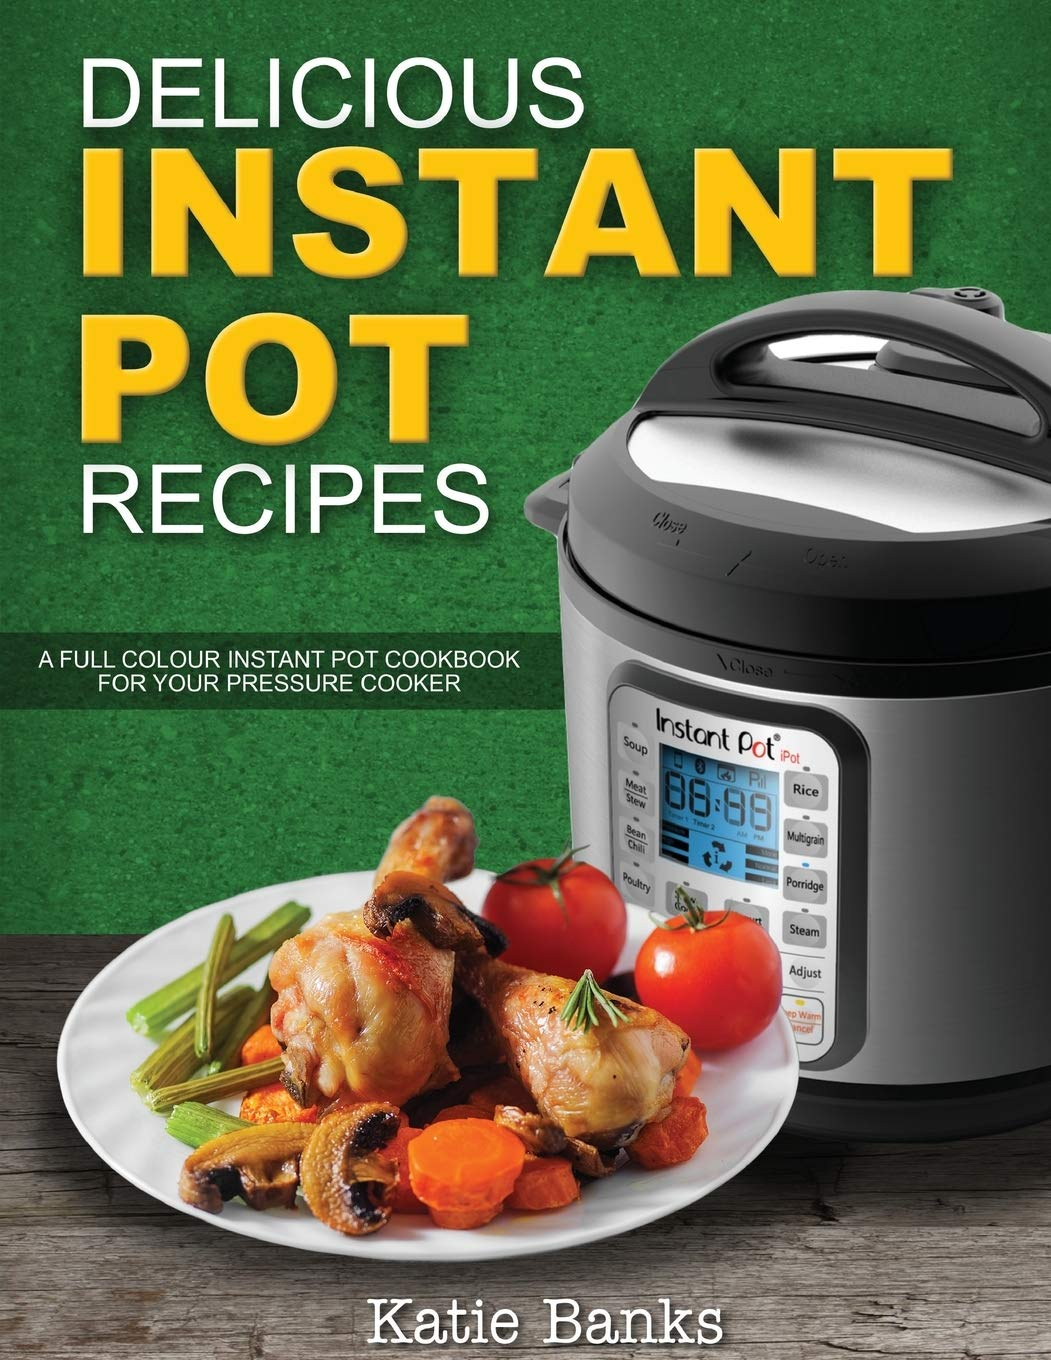 Delicious Instant Pot Recipes: A Full Colour Instant Pot Cookbook For Your Pressure Cooker